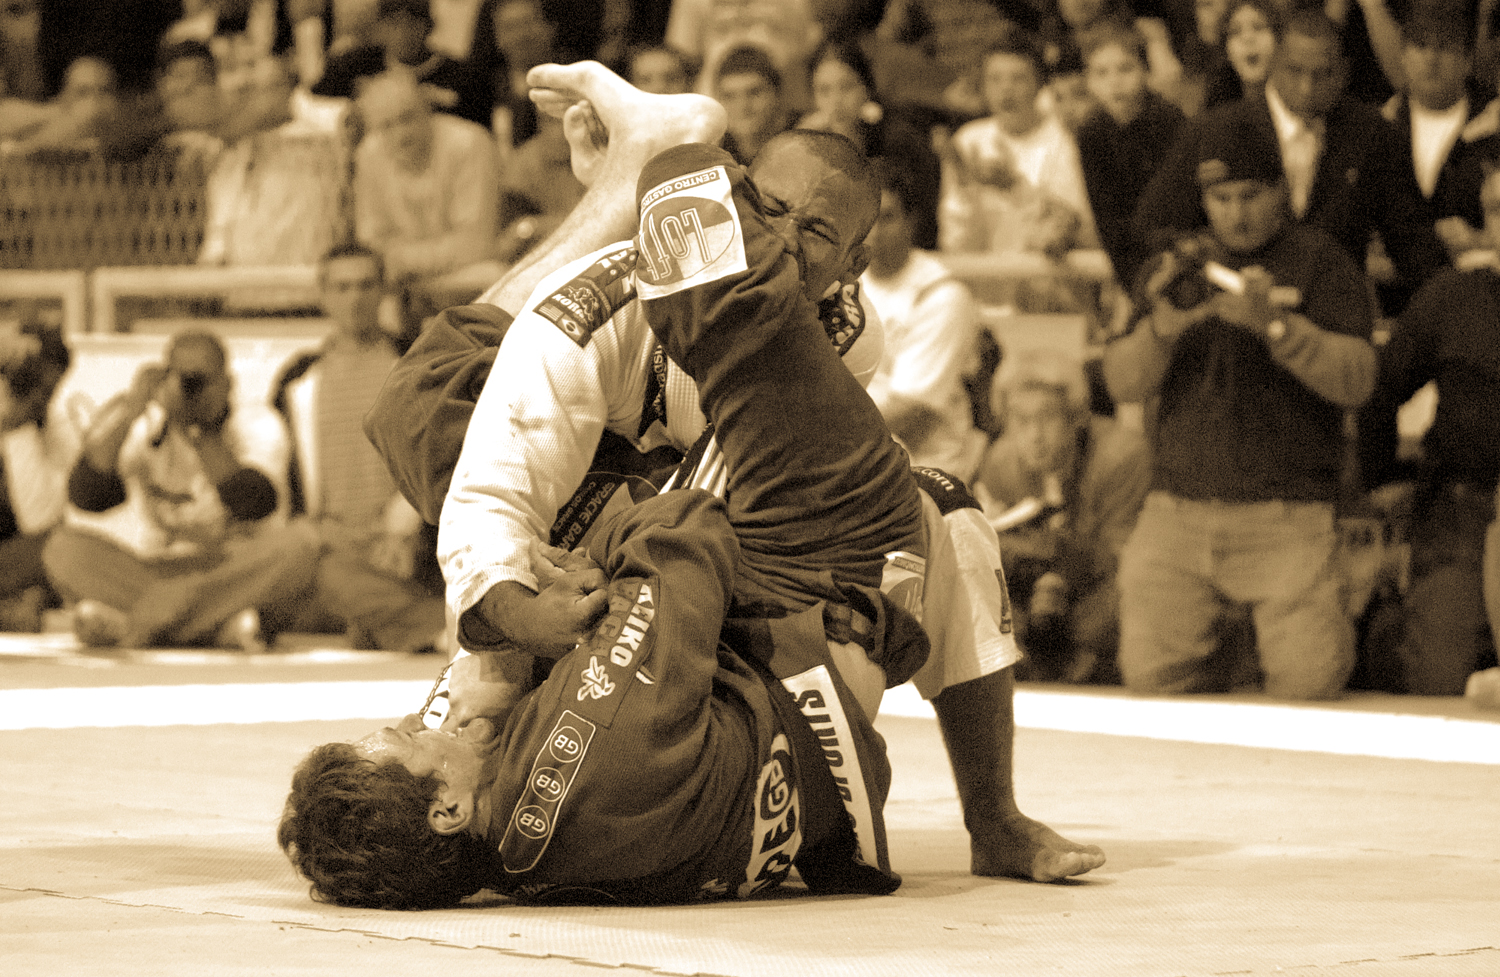 Roger Gracie sets the famous armbar on Jacare at the 2004 Worlds